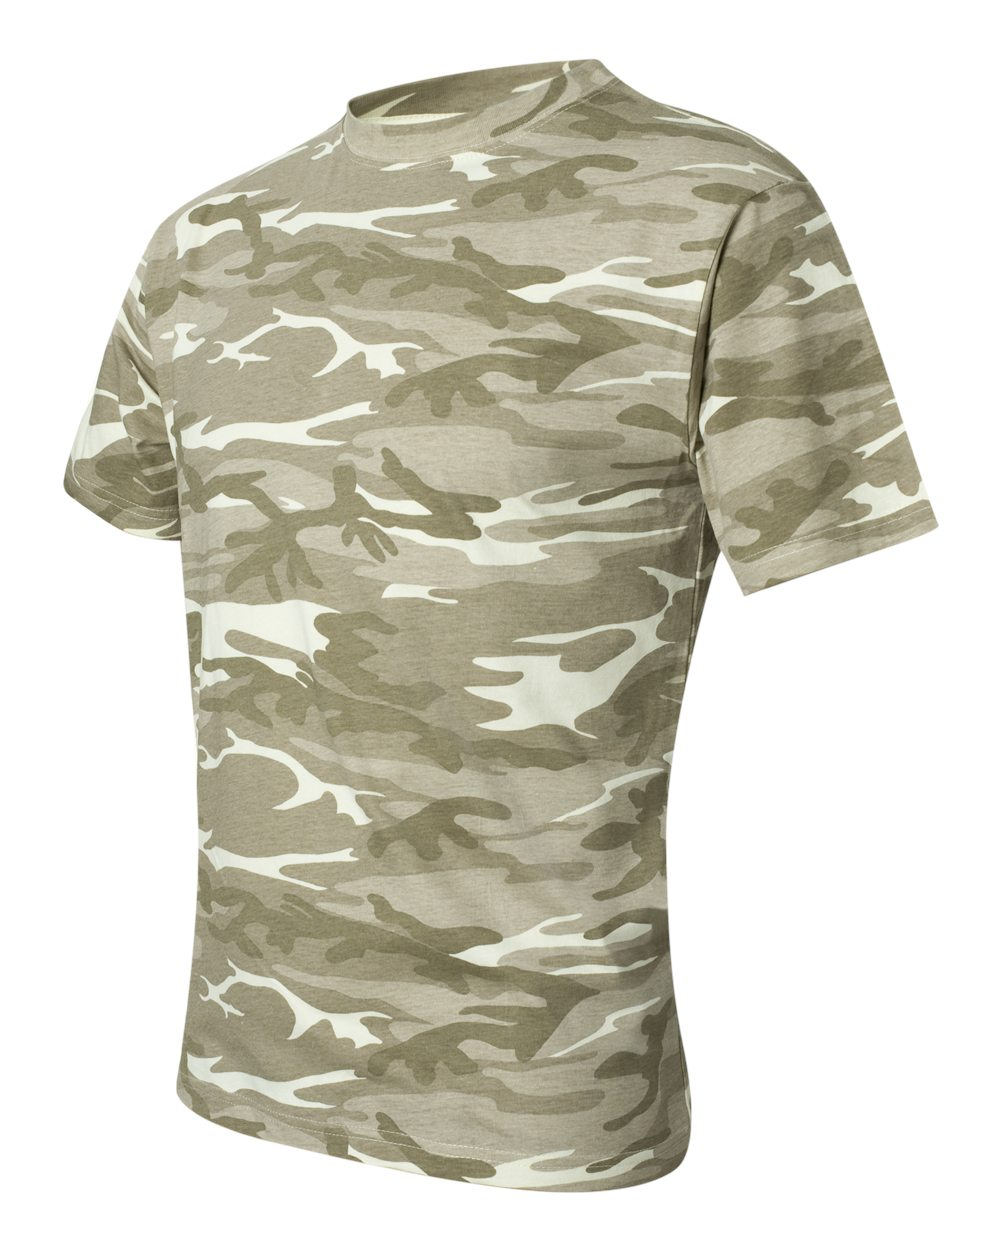 Anvil 939 camouflage t shirt friendly arctic printing for Camouflage t shirt printing